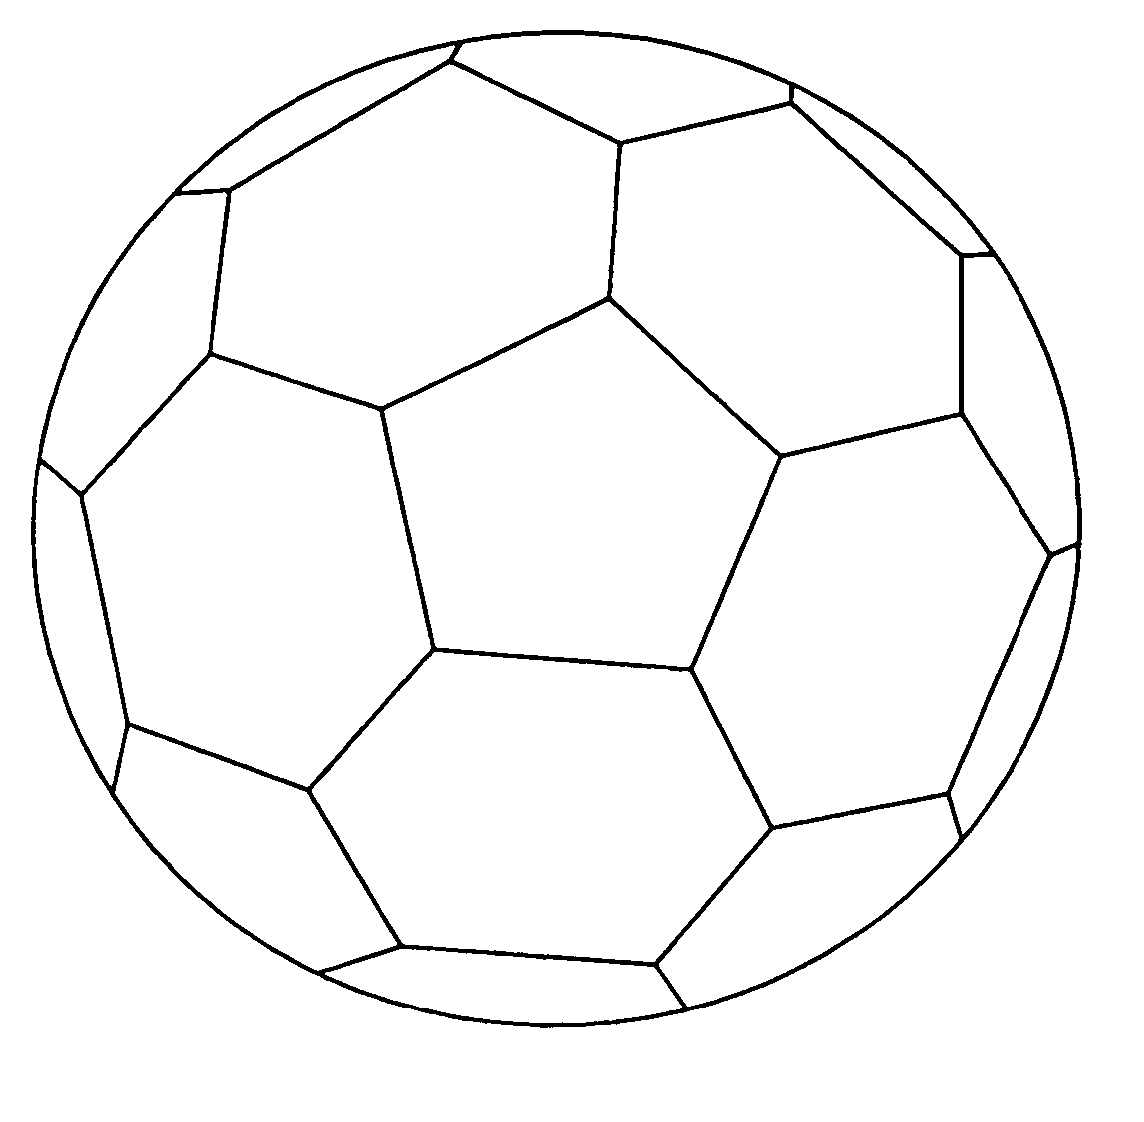 coloring pages sports soccer – lifewiththepeppers.com | 1122x1144